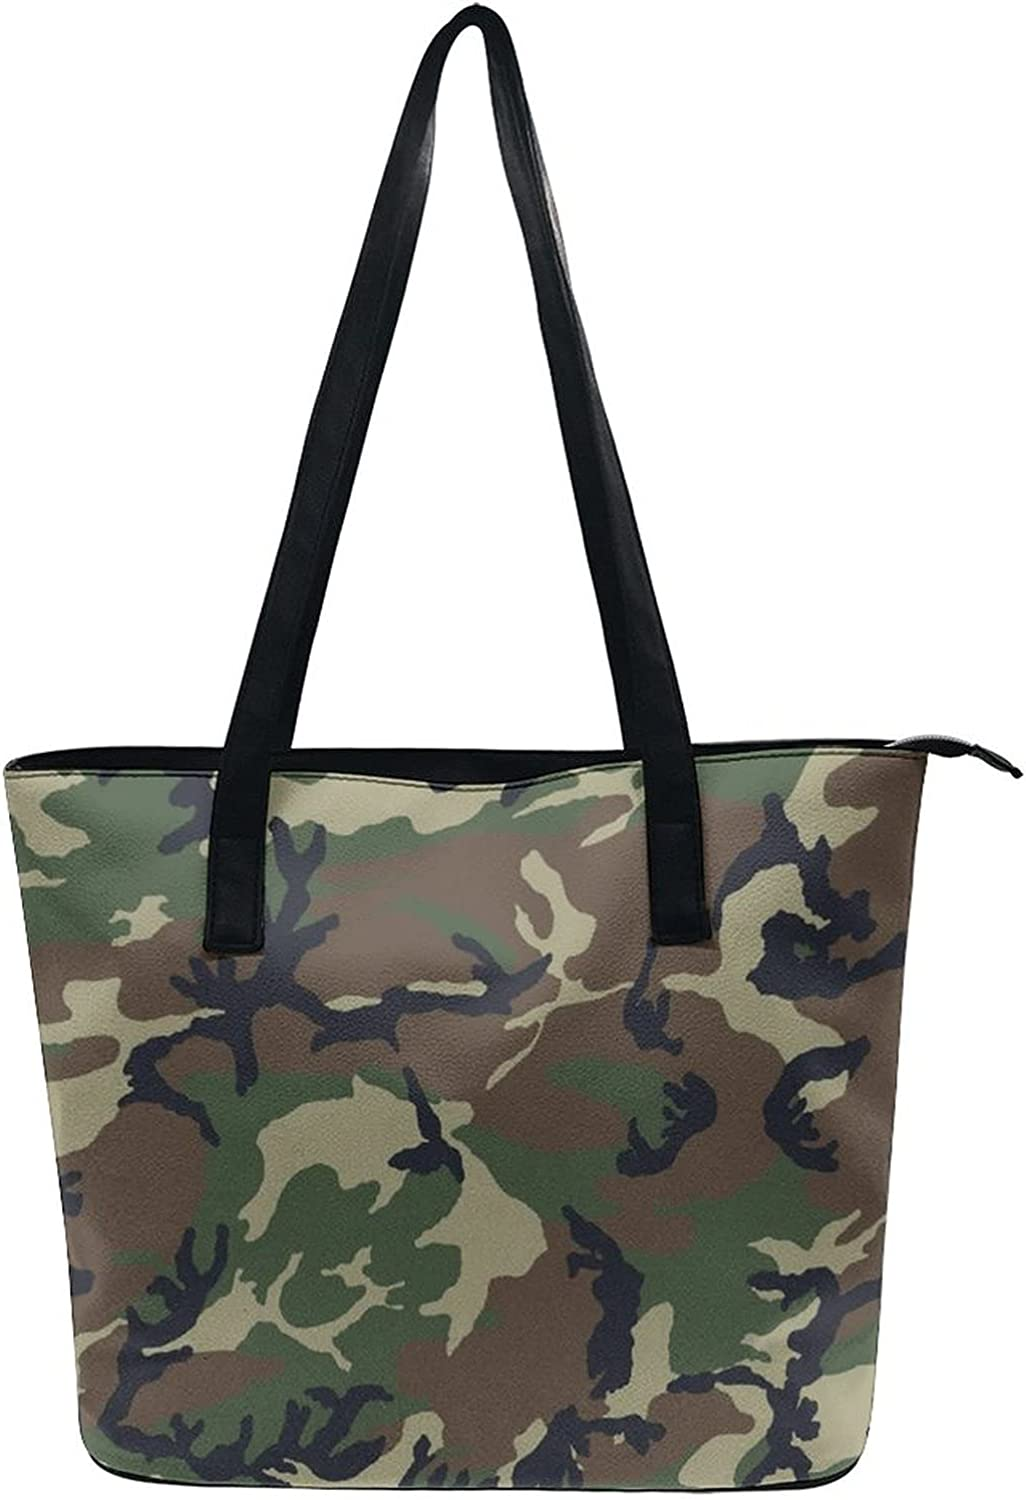 Army Camouflage 3D Print Shoulder Tote Bag Beach Satchel Bags For Women Lady Large Capacity Hobo Bag